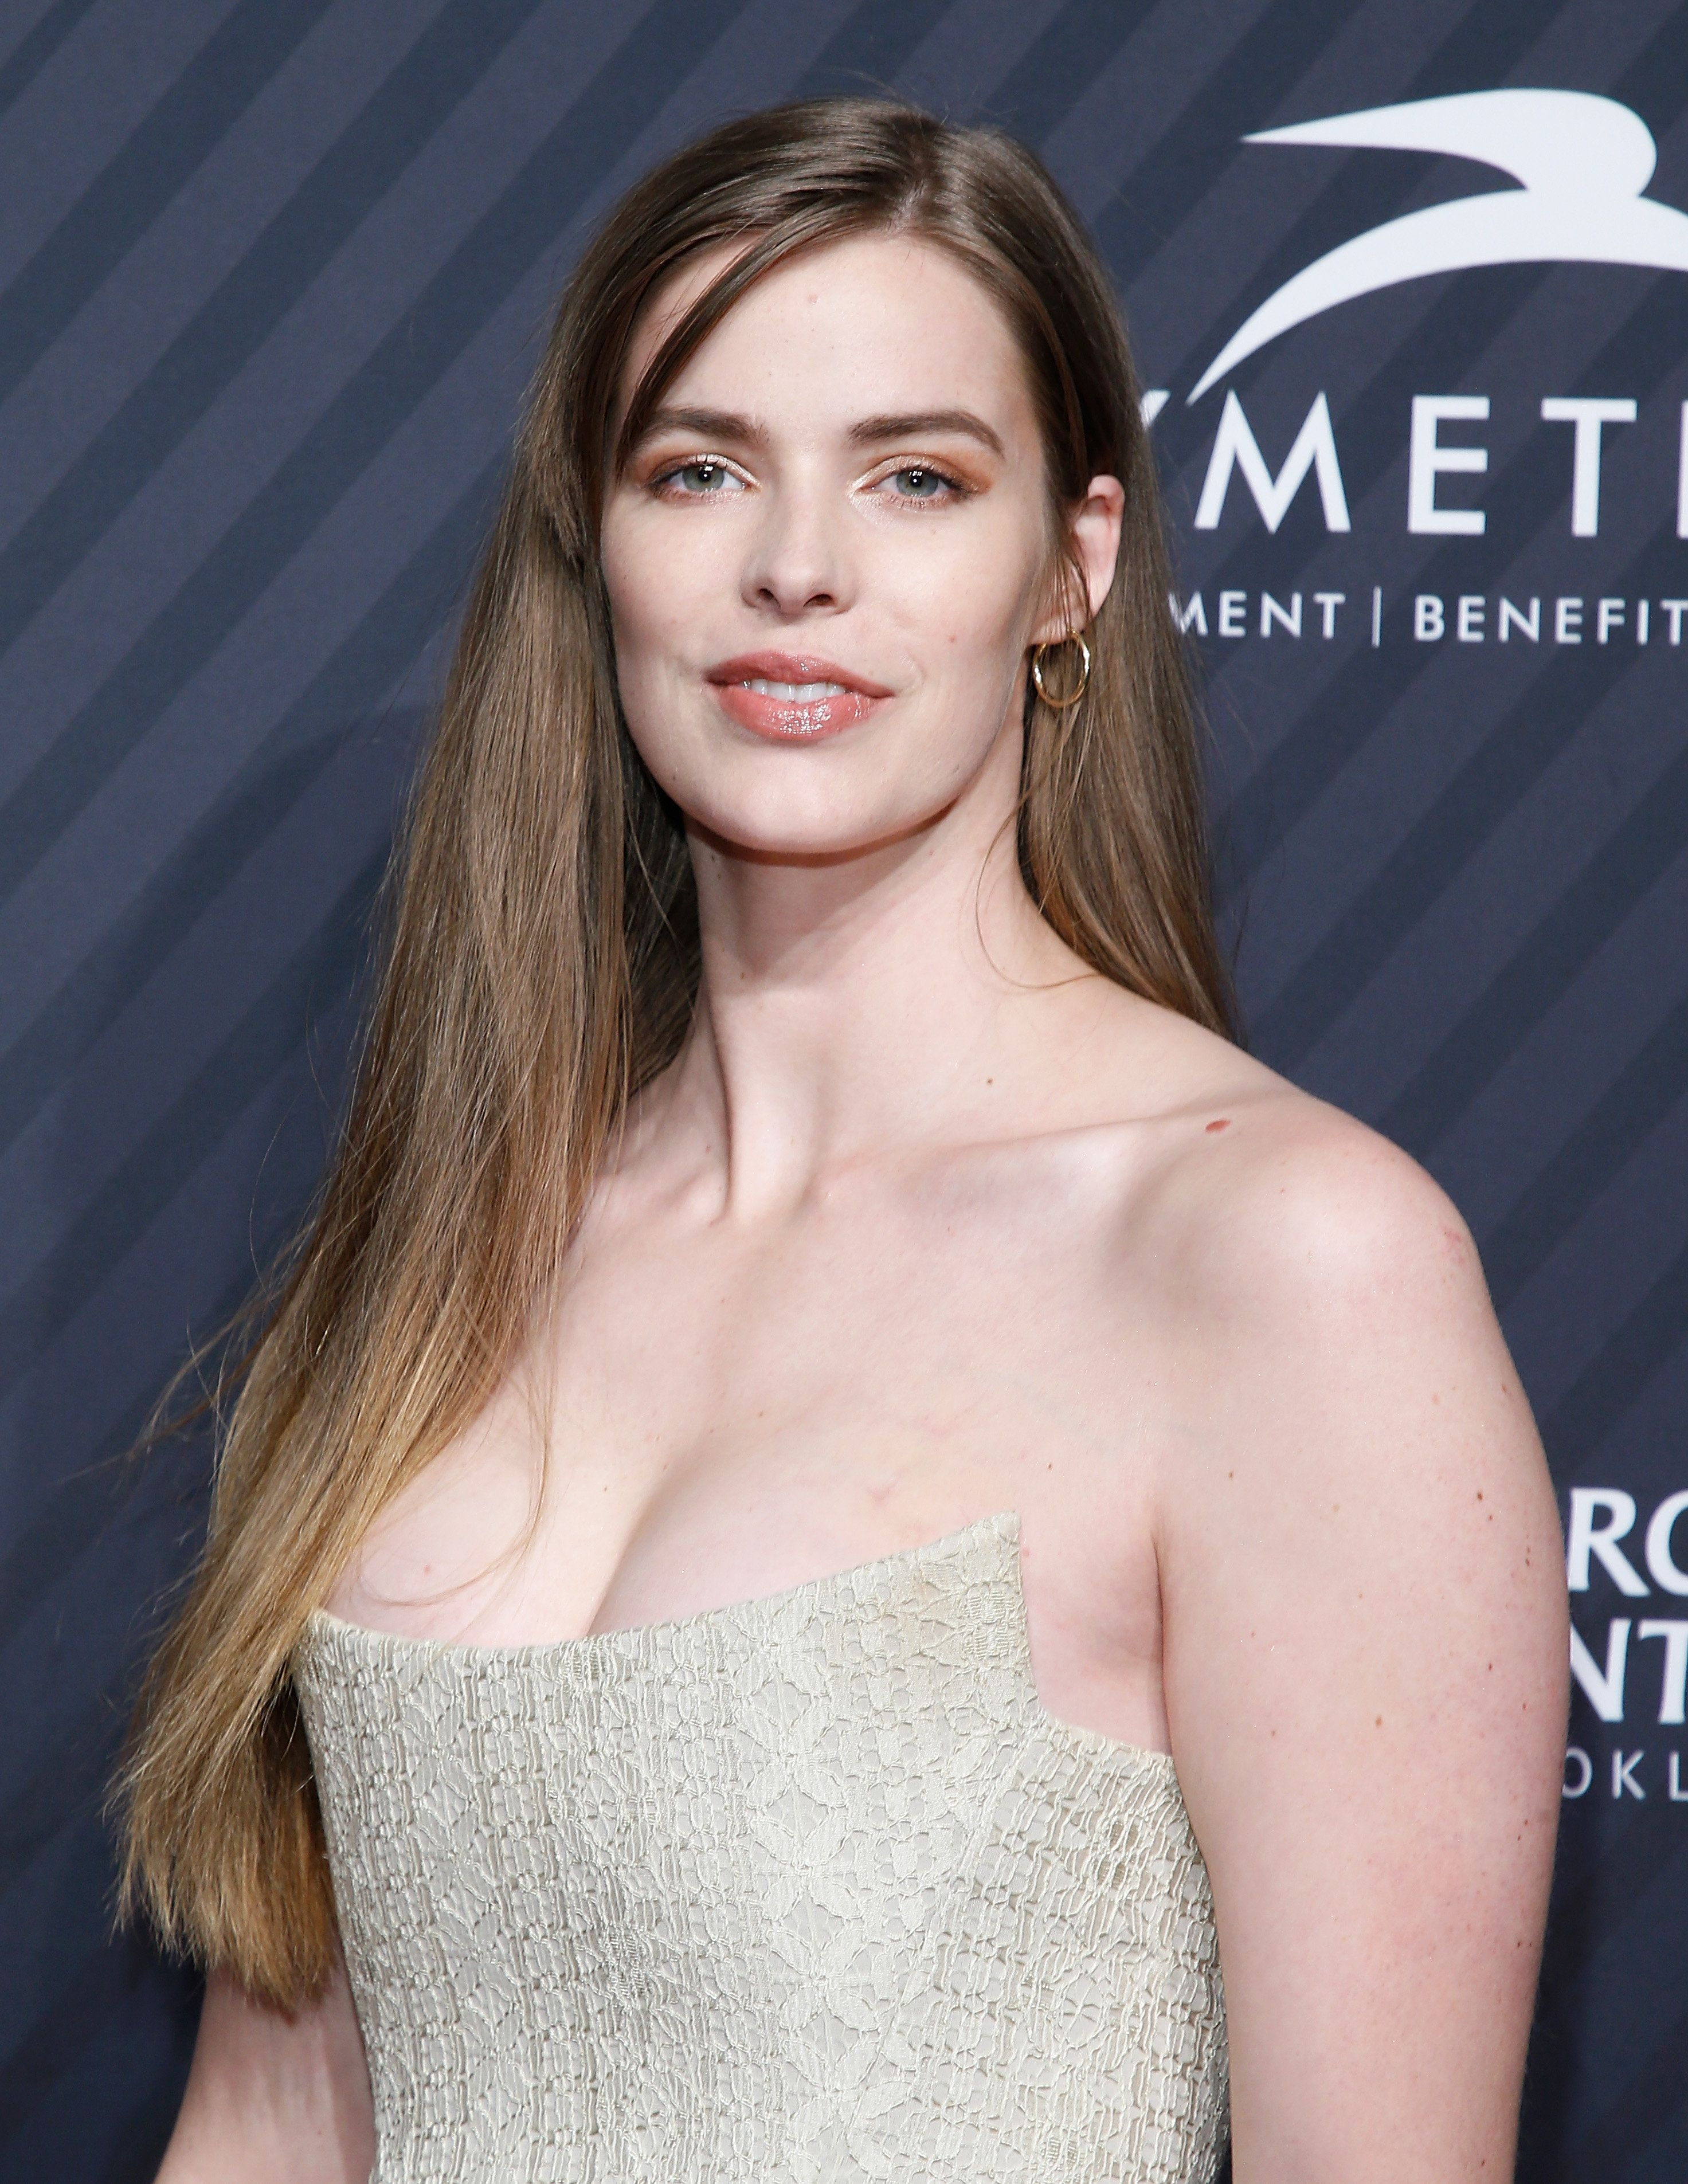 Model Robyn Lawley Reveals Her Scars After Seizure, Scary Fall Down